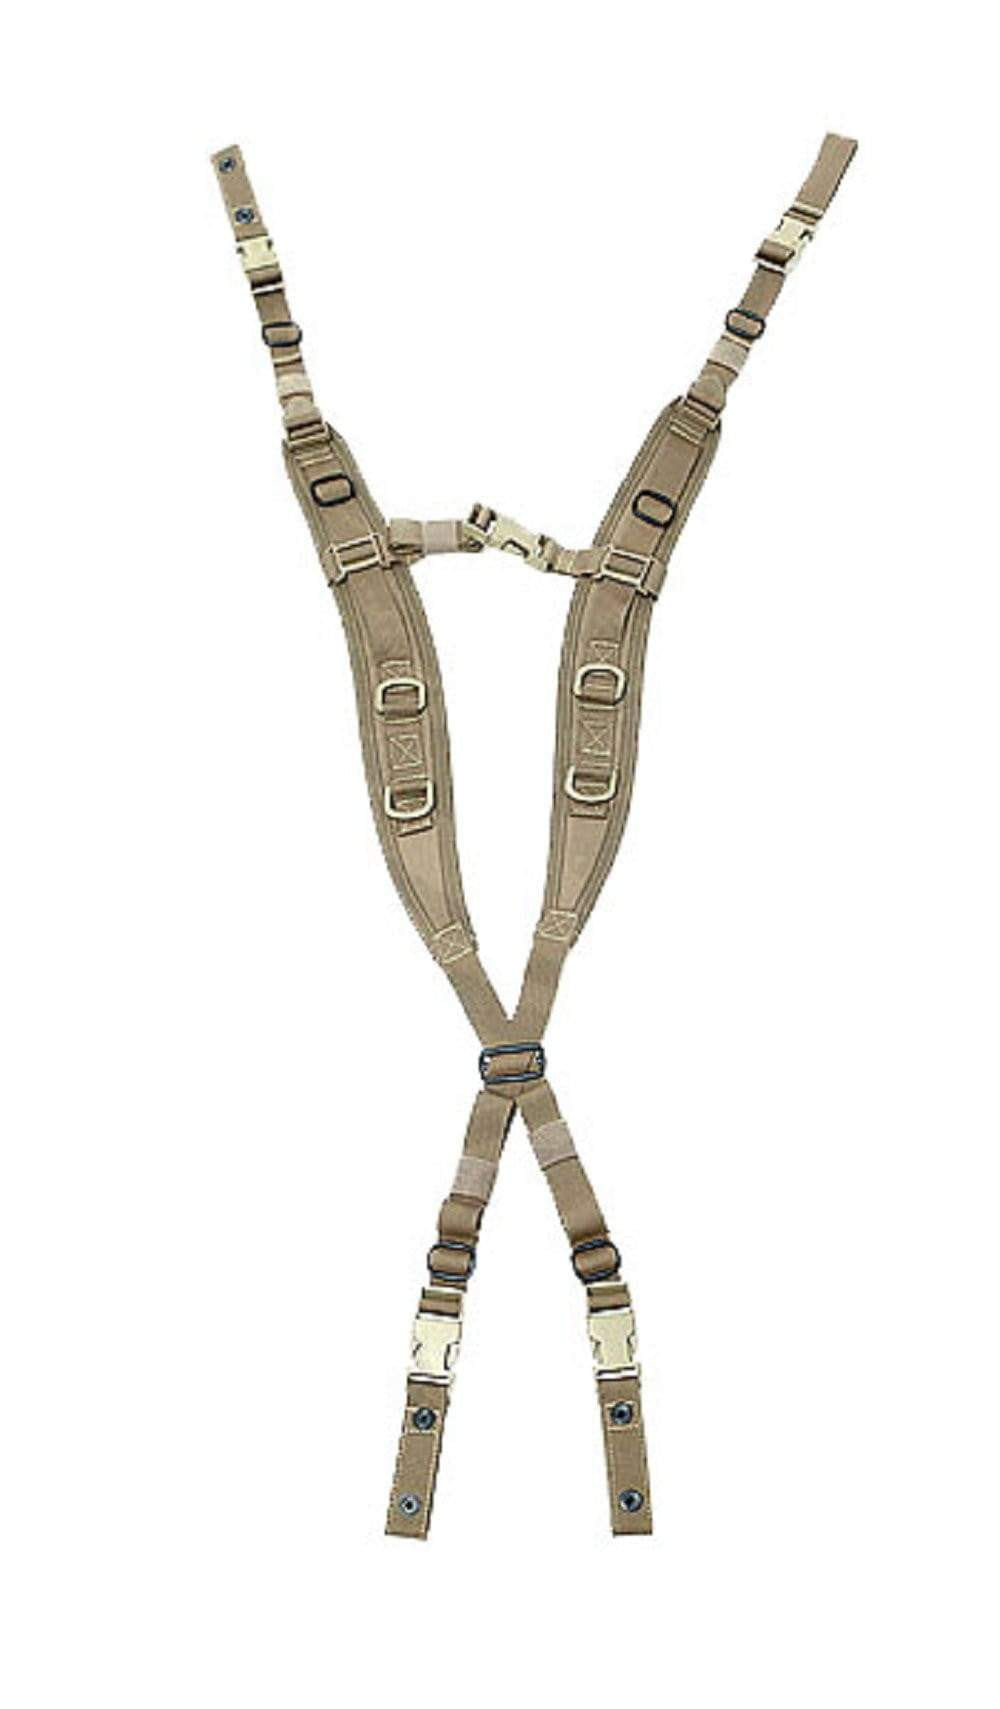 Warrior Assault Systems Low Profile Harness - CHK-SHIELD | Outdoor Army - Tactical Gear Shop